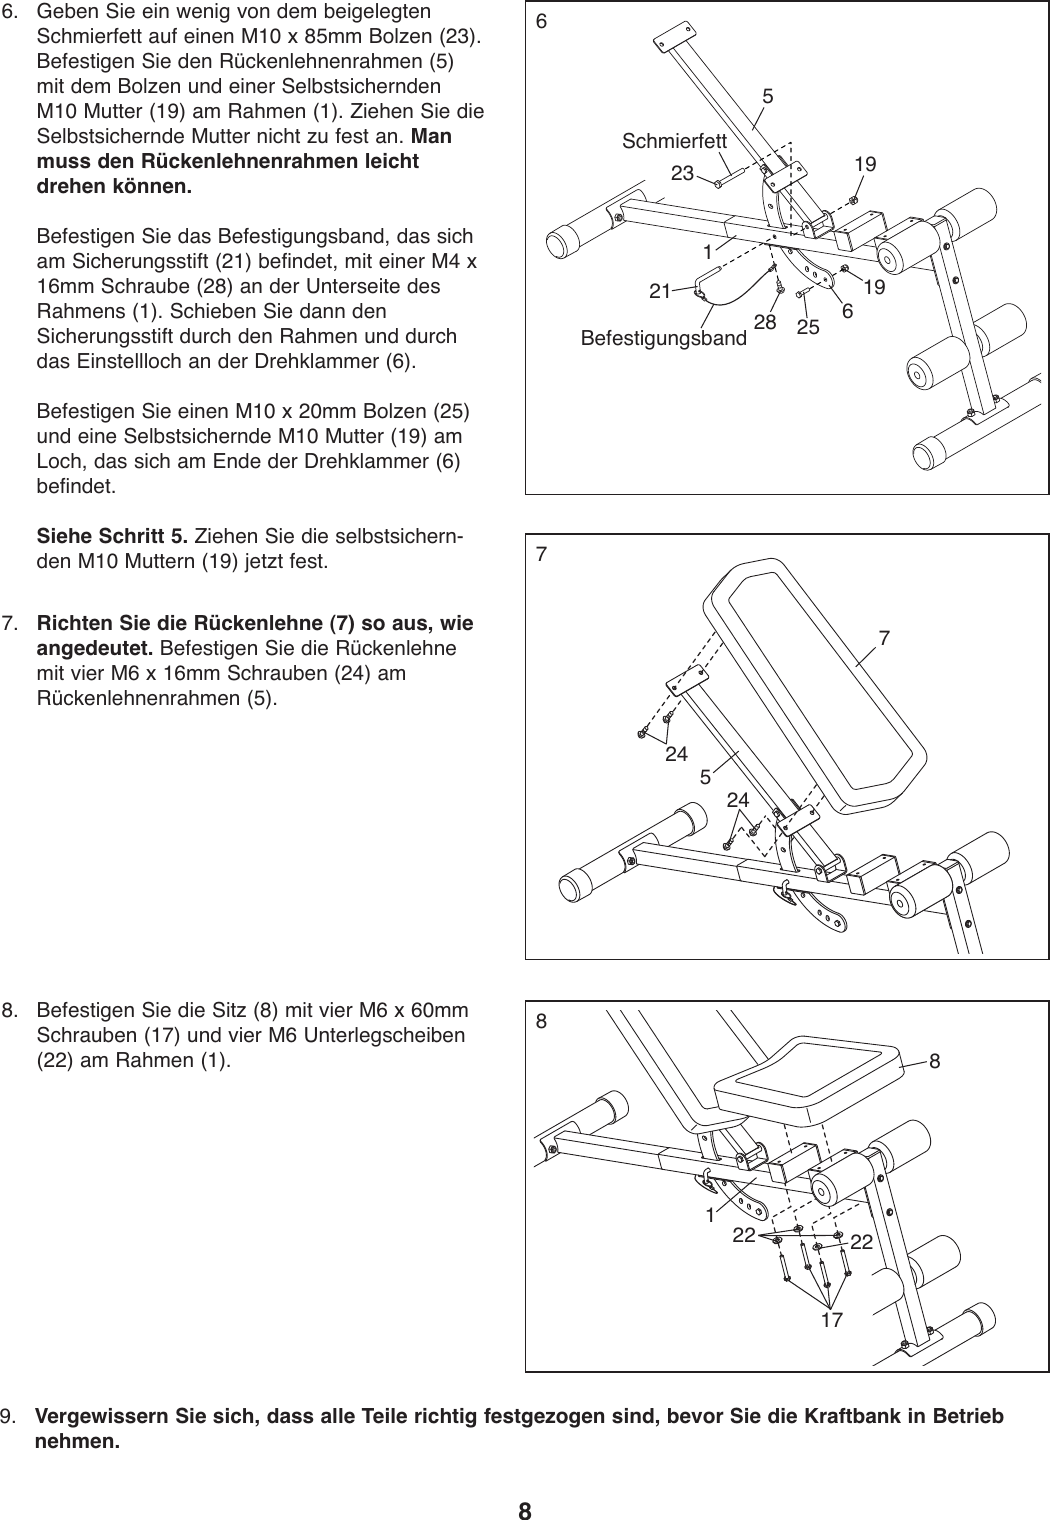 Weider Tc 150 Bench Weevbe5909 Users Manual